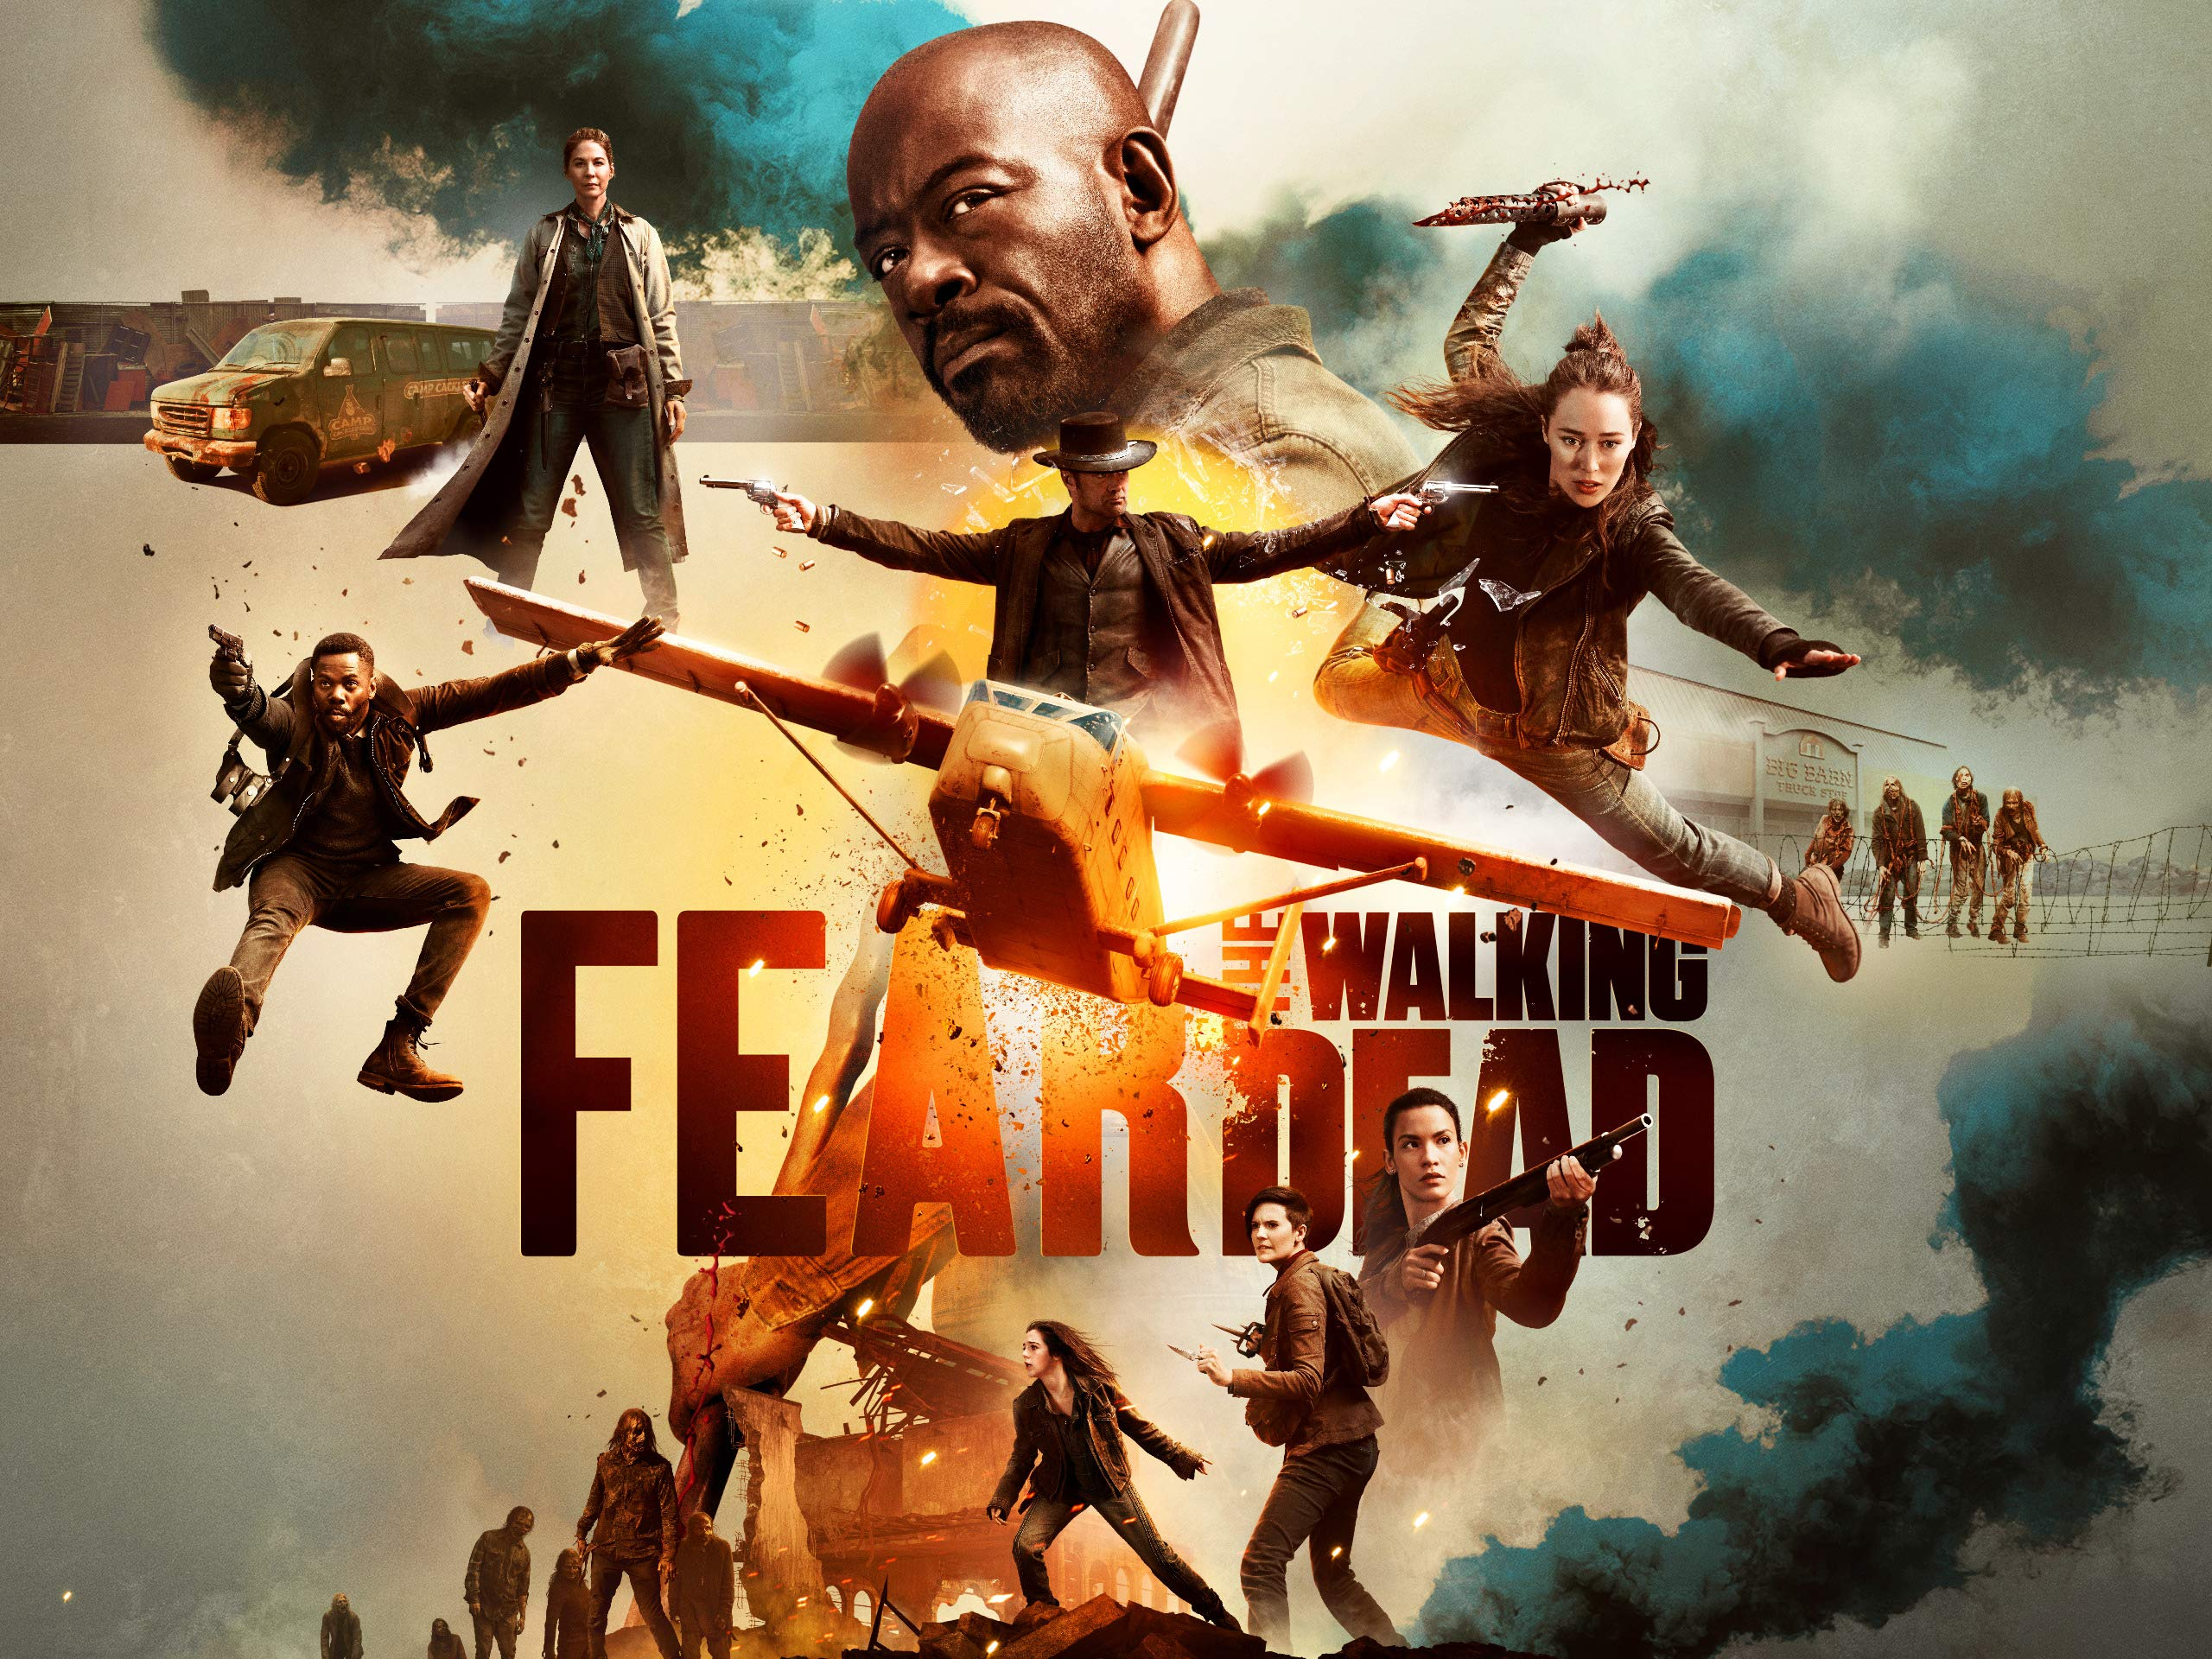 fear the walking dead season 3 episode 10 free streaming